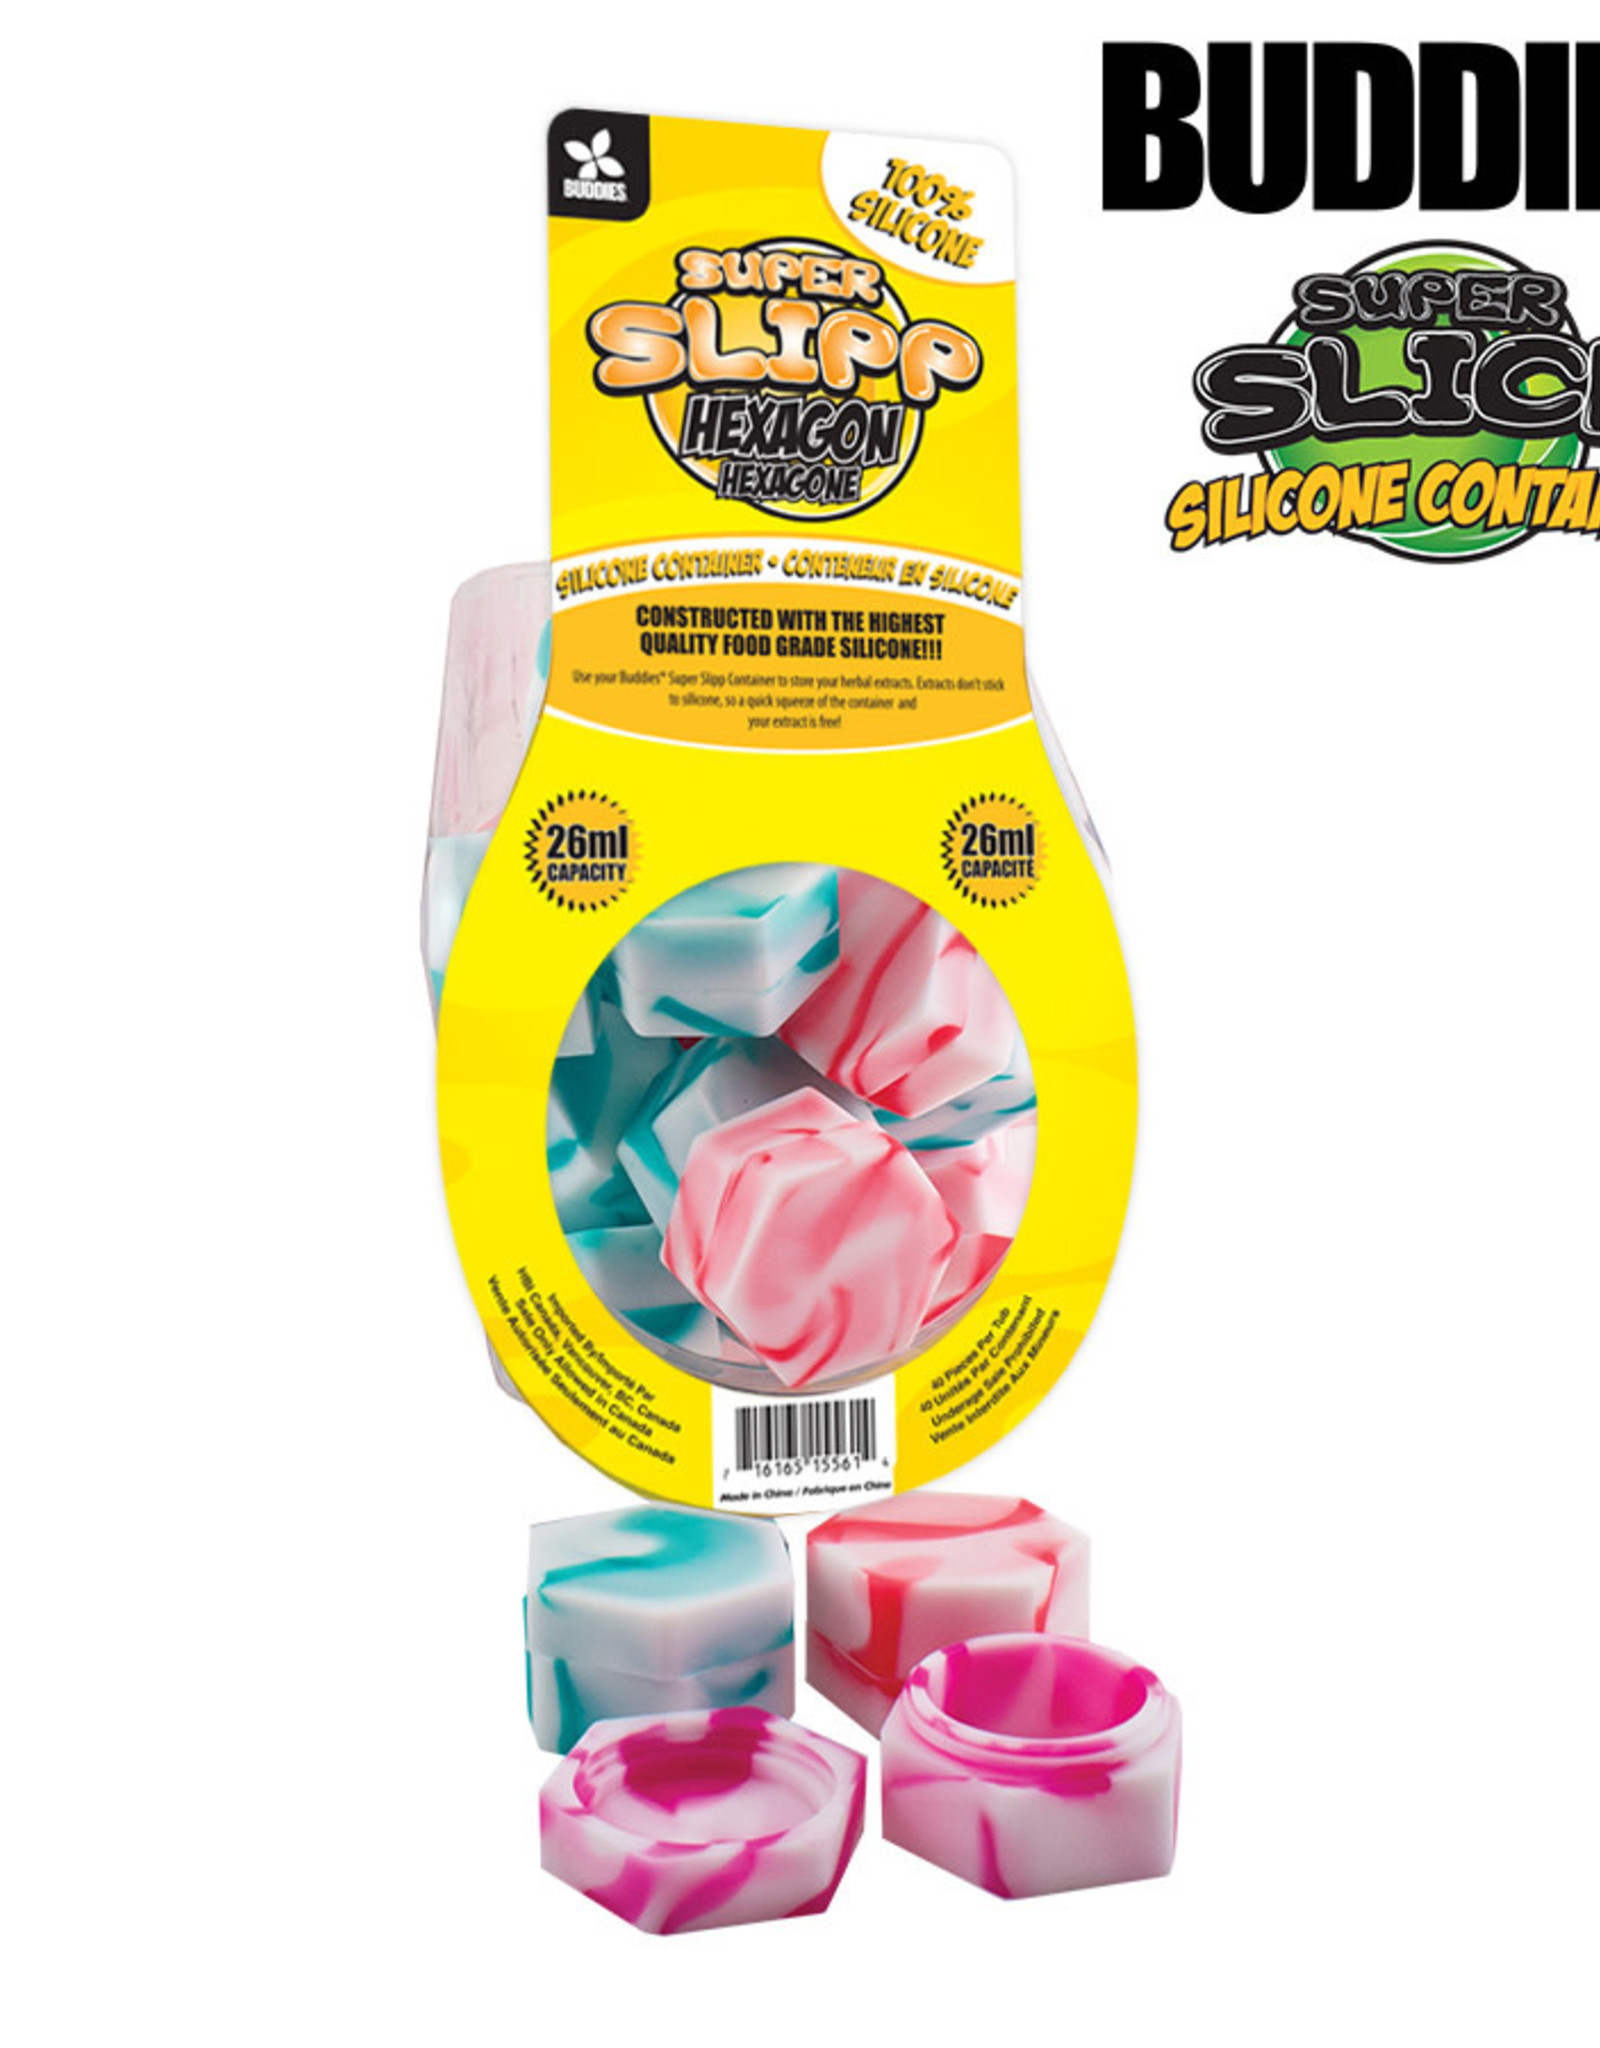 Buddies Silicone Container - Hexagon 26ml